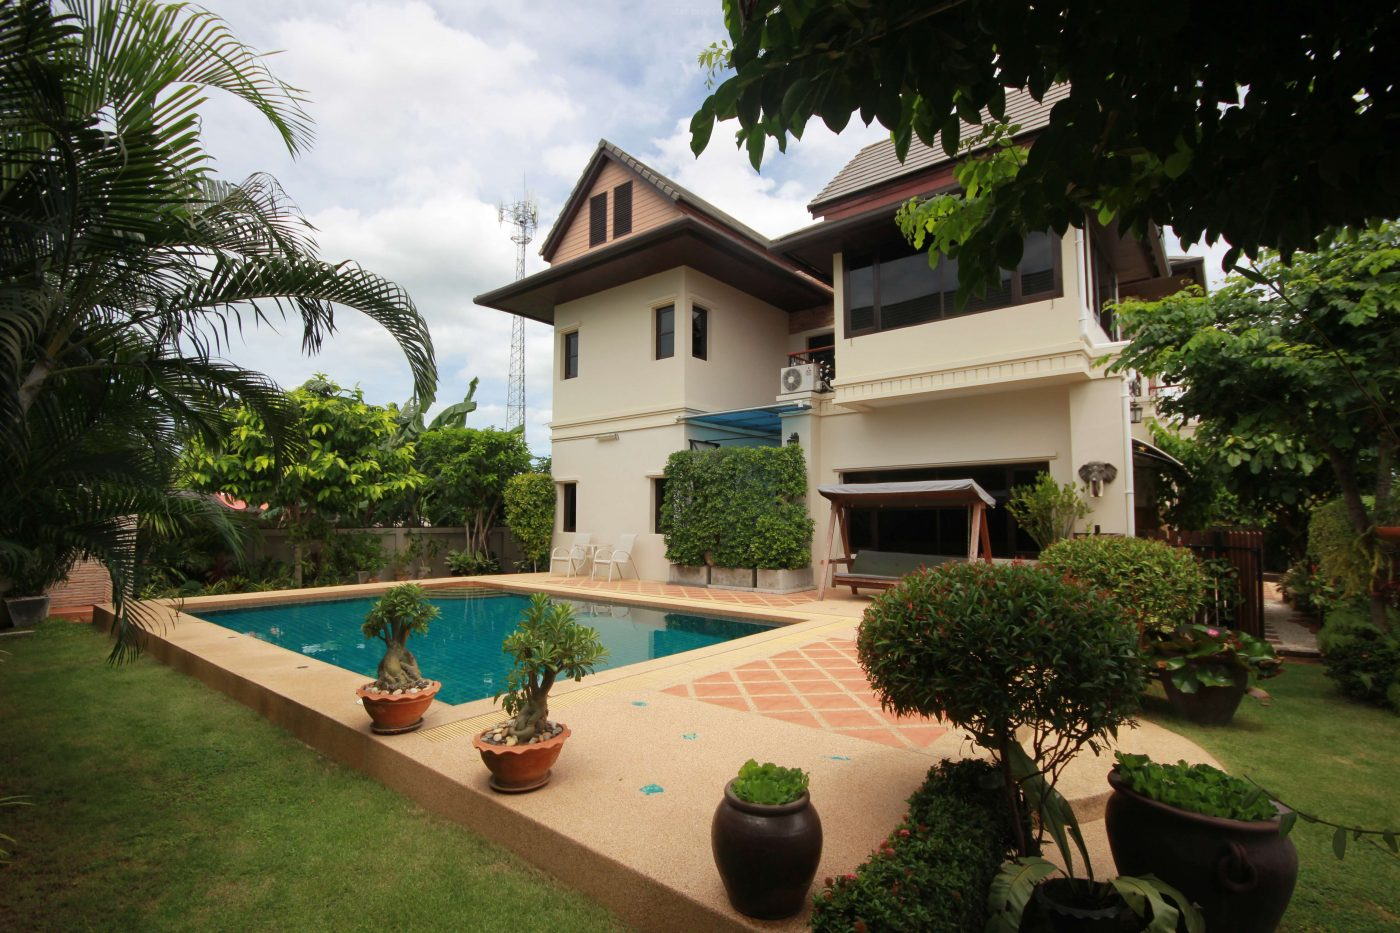 High Quality Pool Villa for Sale at Hua Hin District, Prachuap Khiri Khan, Thailand